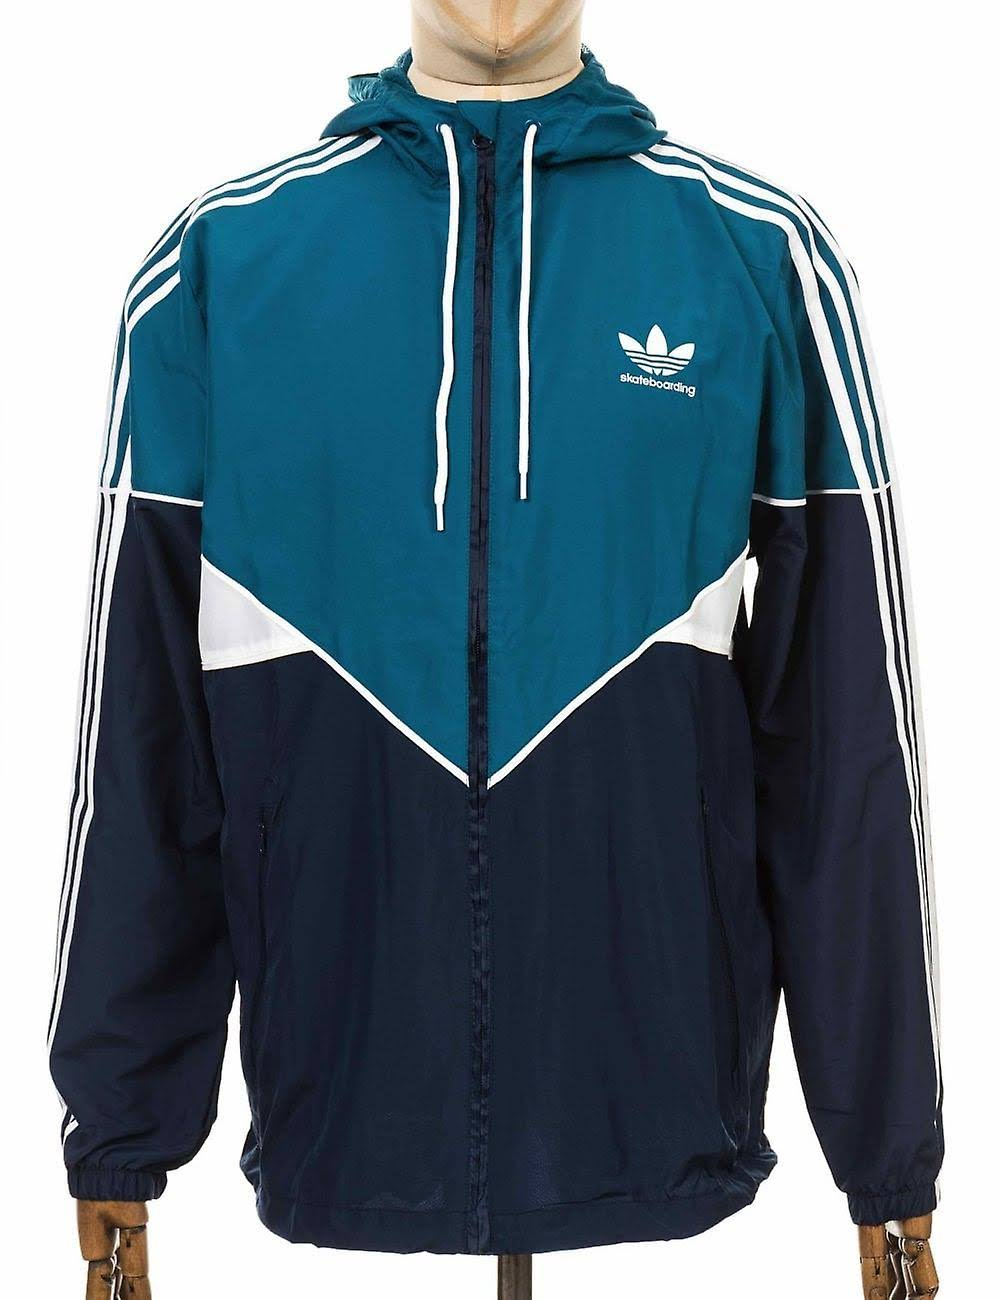 Men Talla Jacket Xl Premiere Blue Adidas Skateboarding xFqCTT